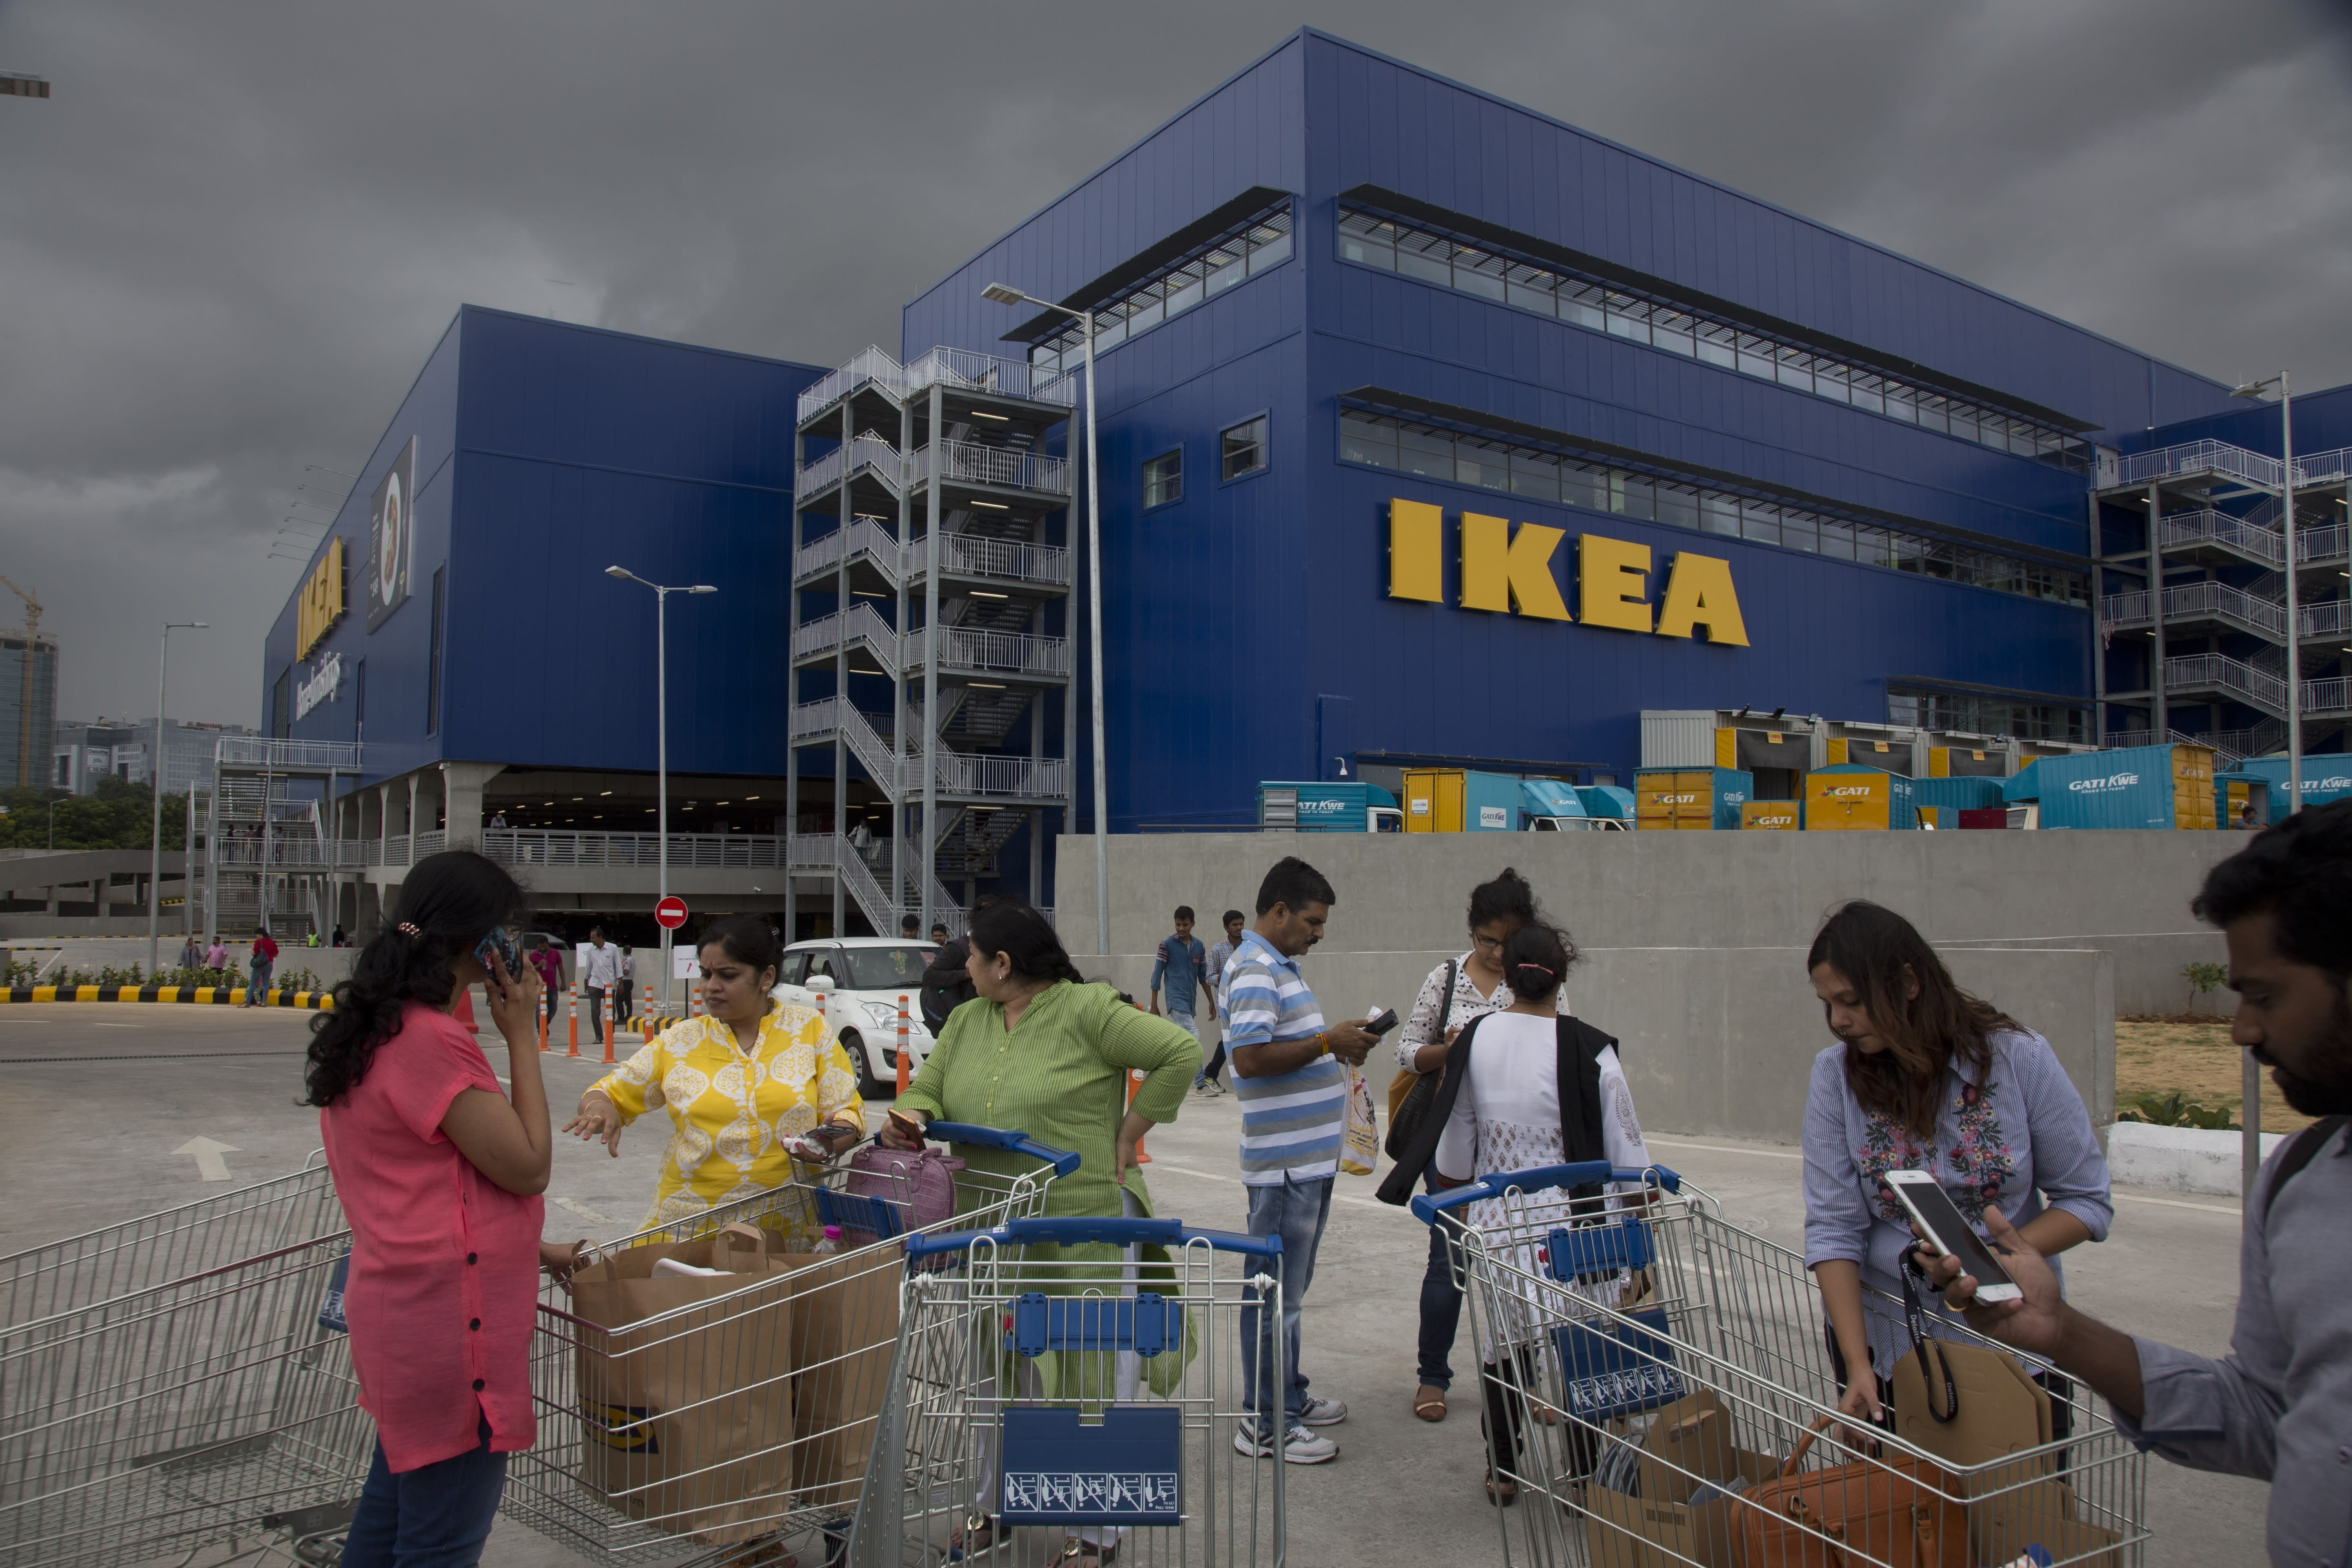 Indian customers stand outside IKEA's first store in India as it opened in Hyderabad, India, Thursday, Aug.9, 2018. Swedish home furnishings giant IKEA opened its first store in India on Thursday, five years after it received approval to invest in the country's single-brand retail sector. (AP Photo/Mahesh Kumar A.)